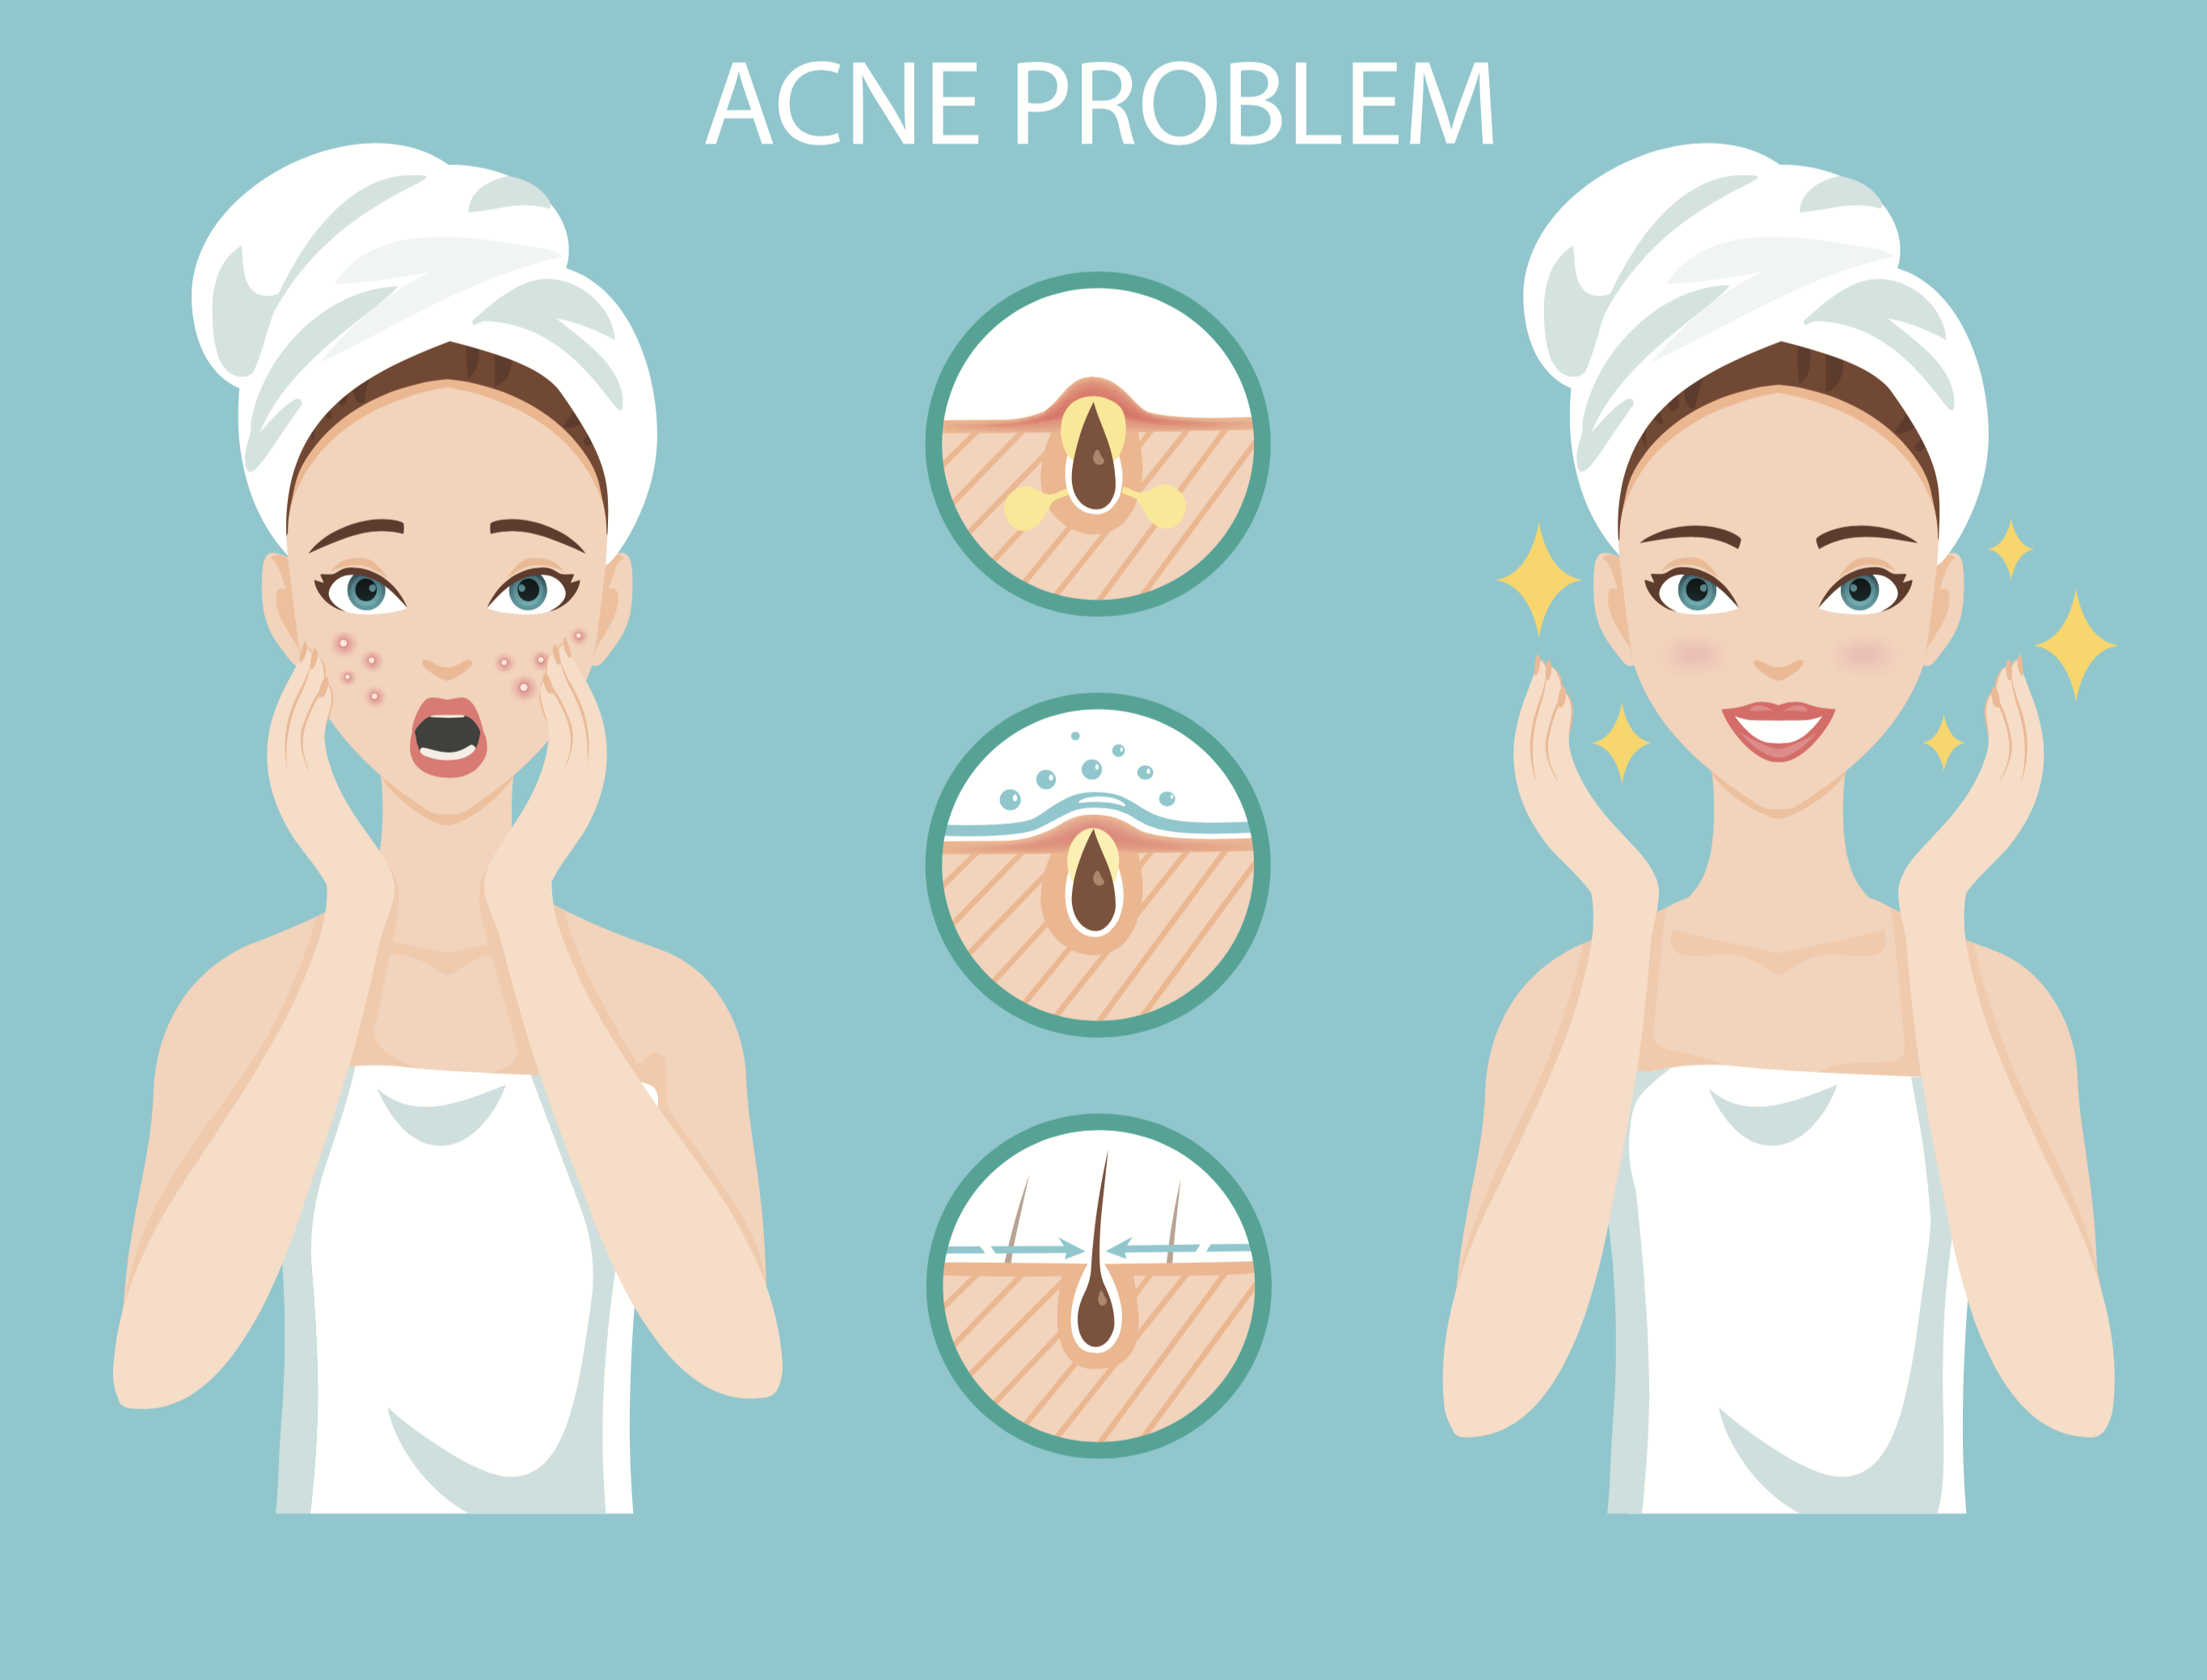 1. Cure Acne